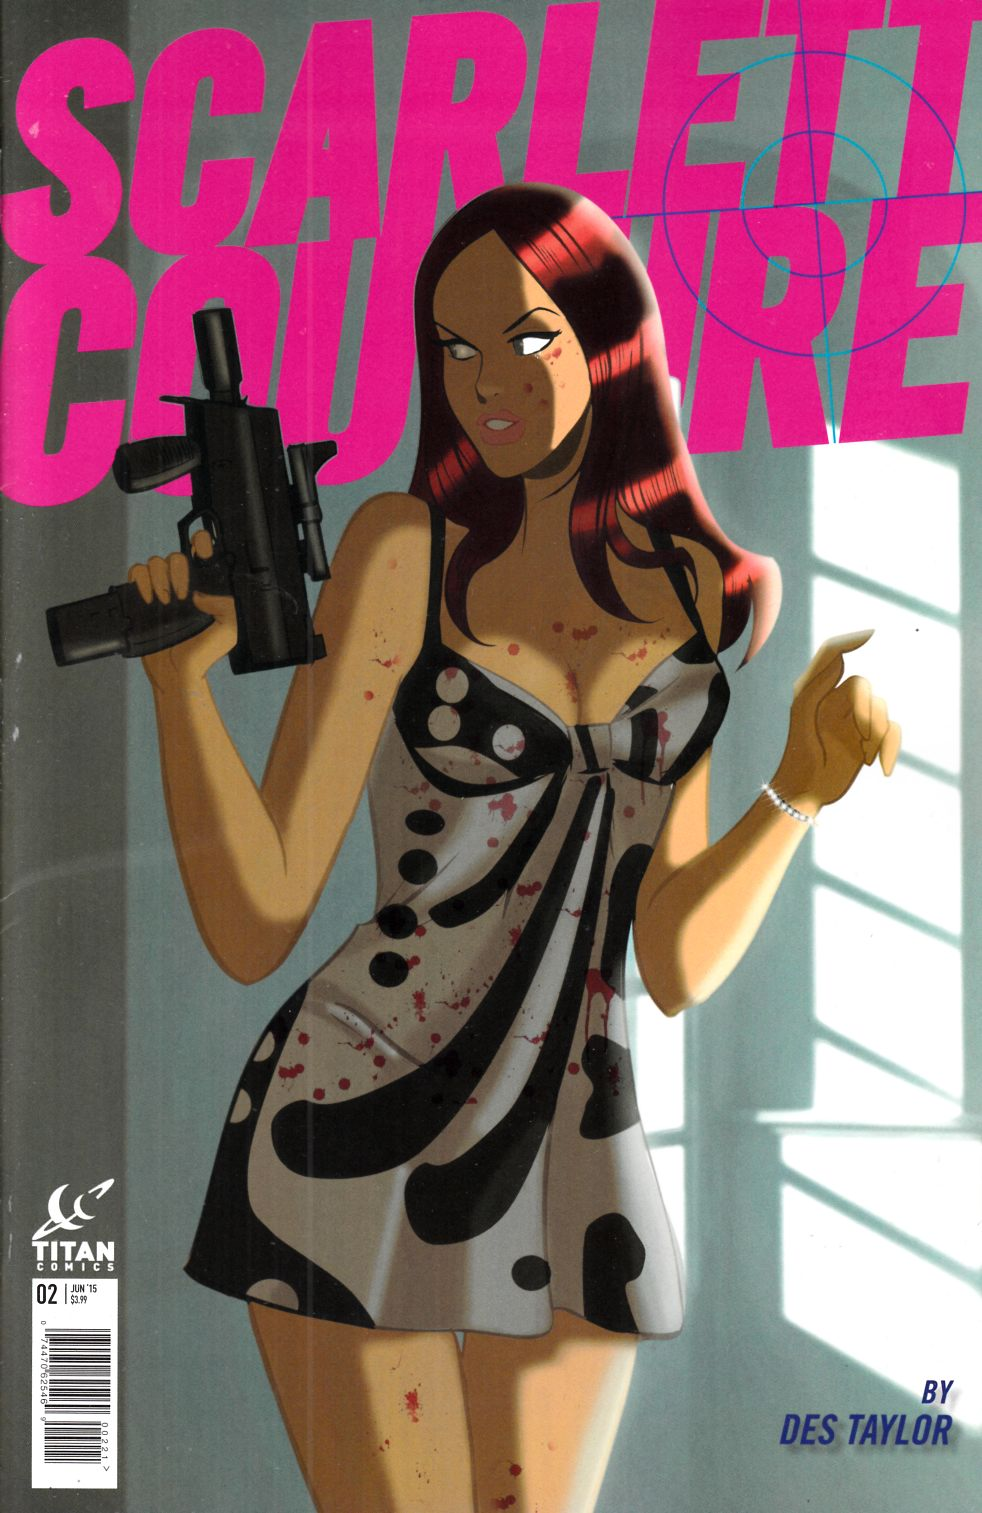 Scarlett Couture #2 Subscription Cover [Titan Comic]